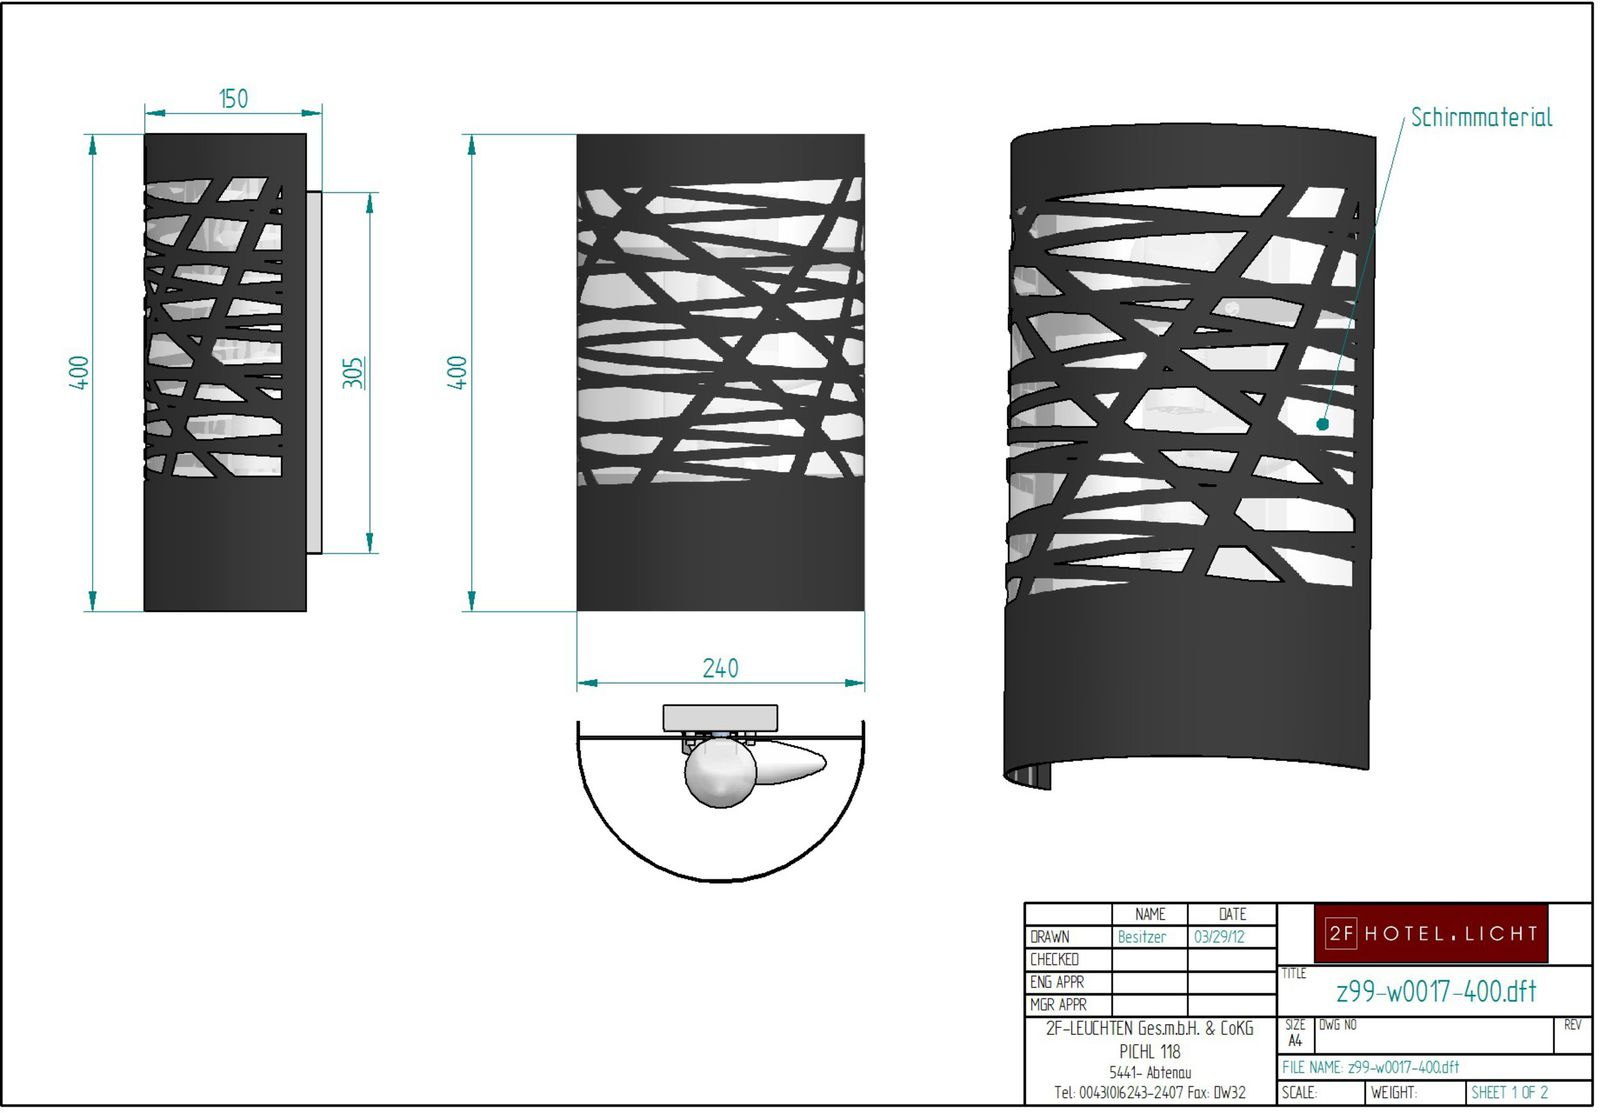 wall lamp, measure: height=400mm, wide=240mm, dept:150mm, material: metall, techn. details: 2xE27, 52W, 1xE14, 28W